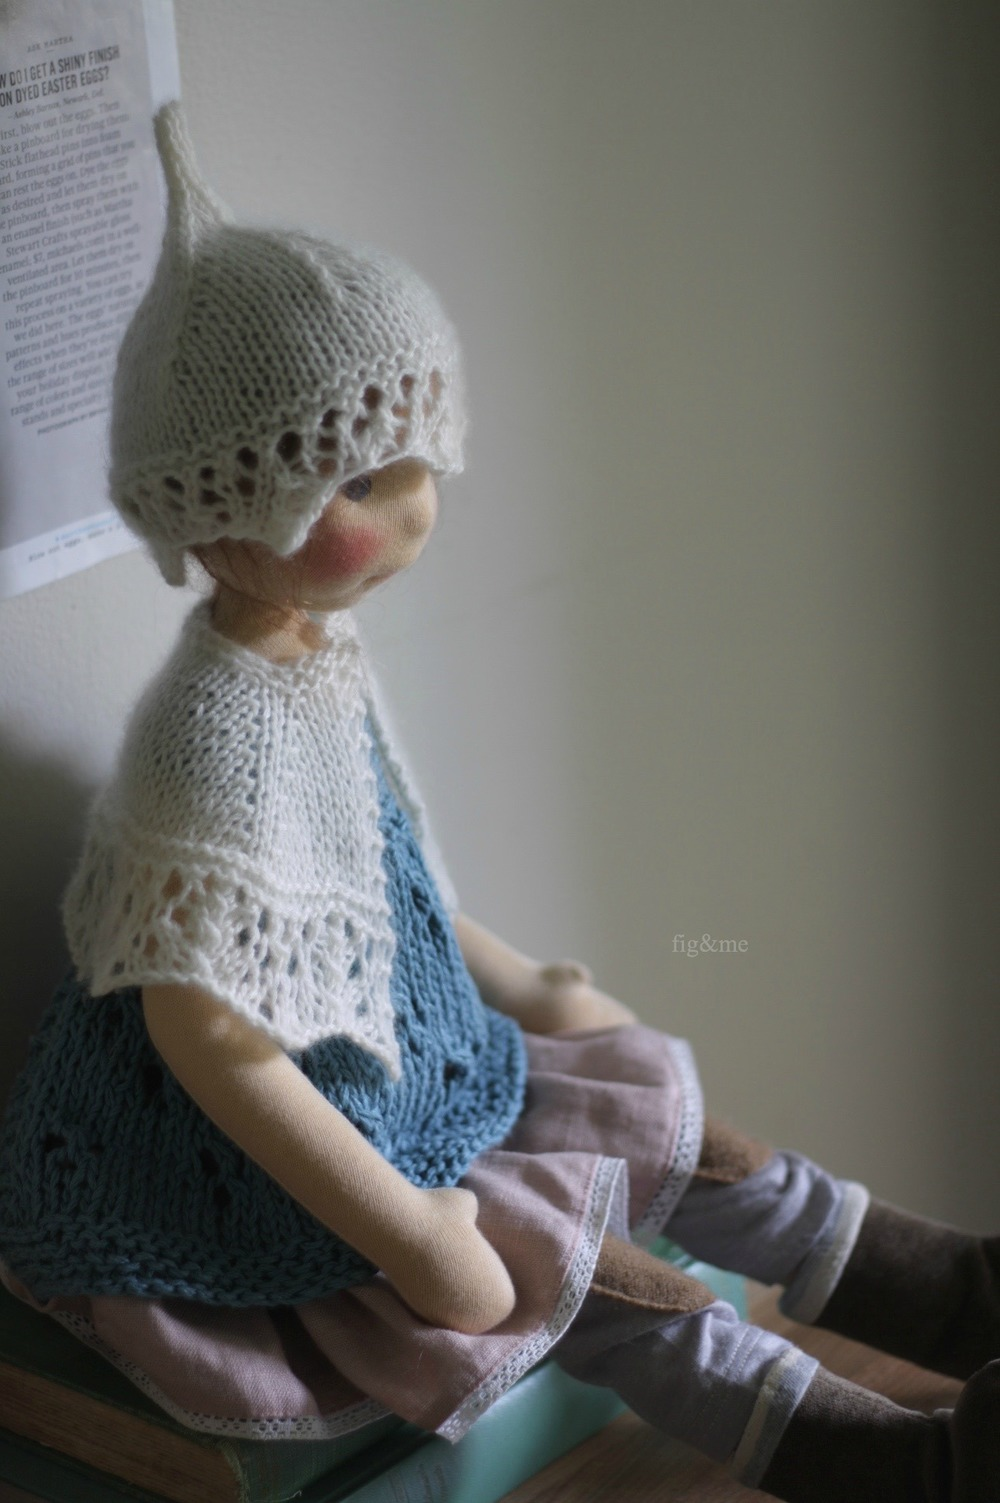 A soft and creamy knitted set (hat and cape) by Fig&me